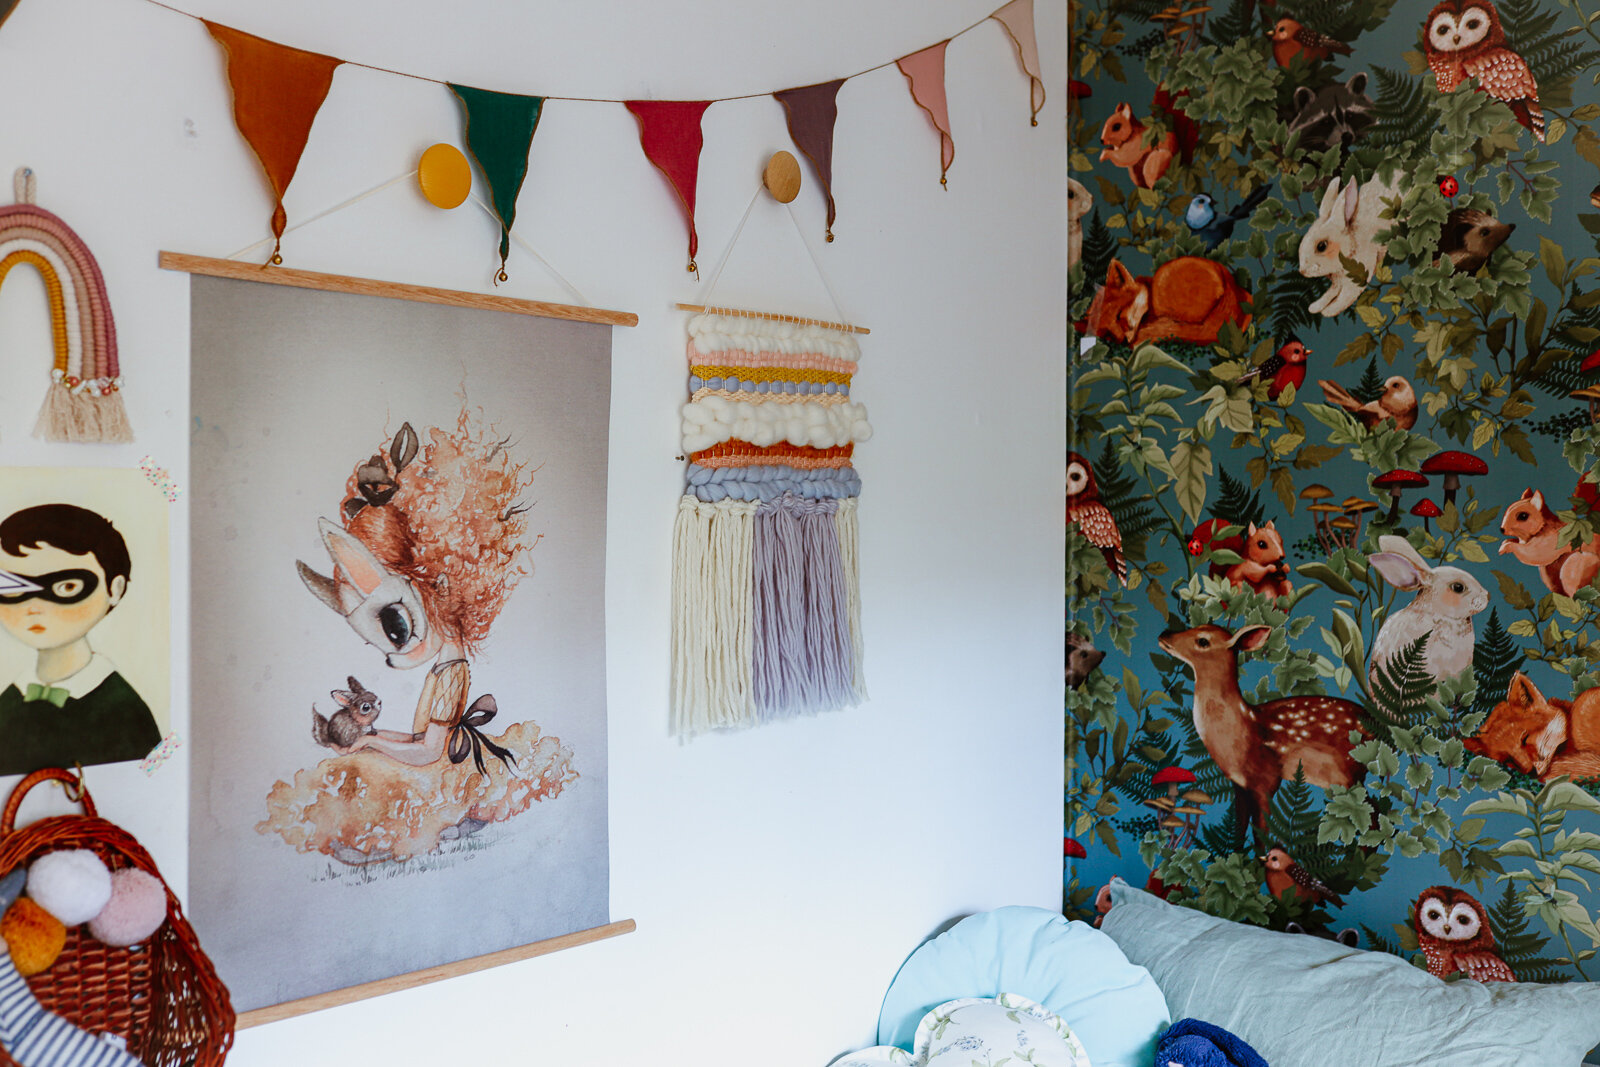 DIY_woven_wall_hanging_by_clever_poppy_finishedshared_room2.jpg